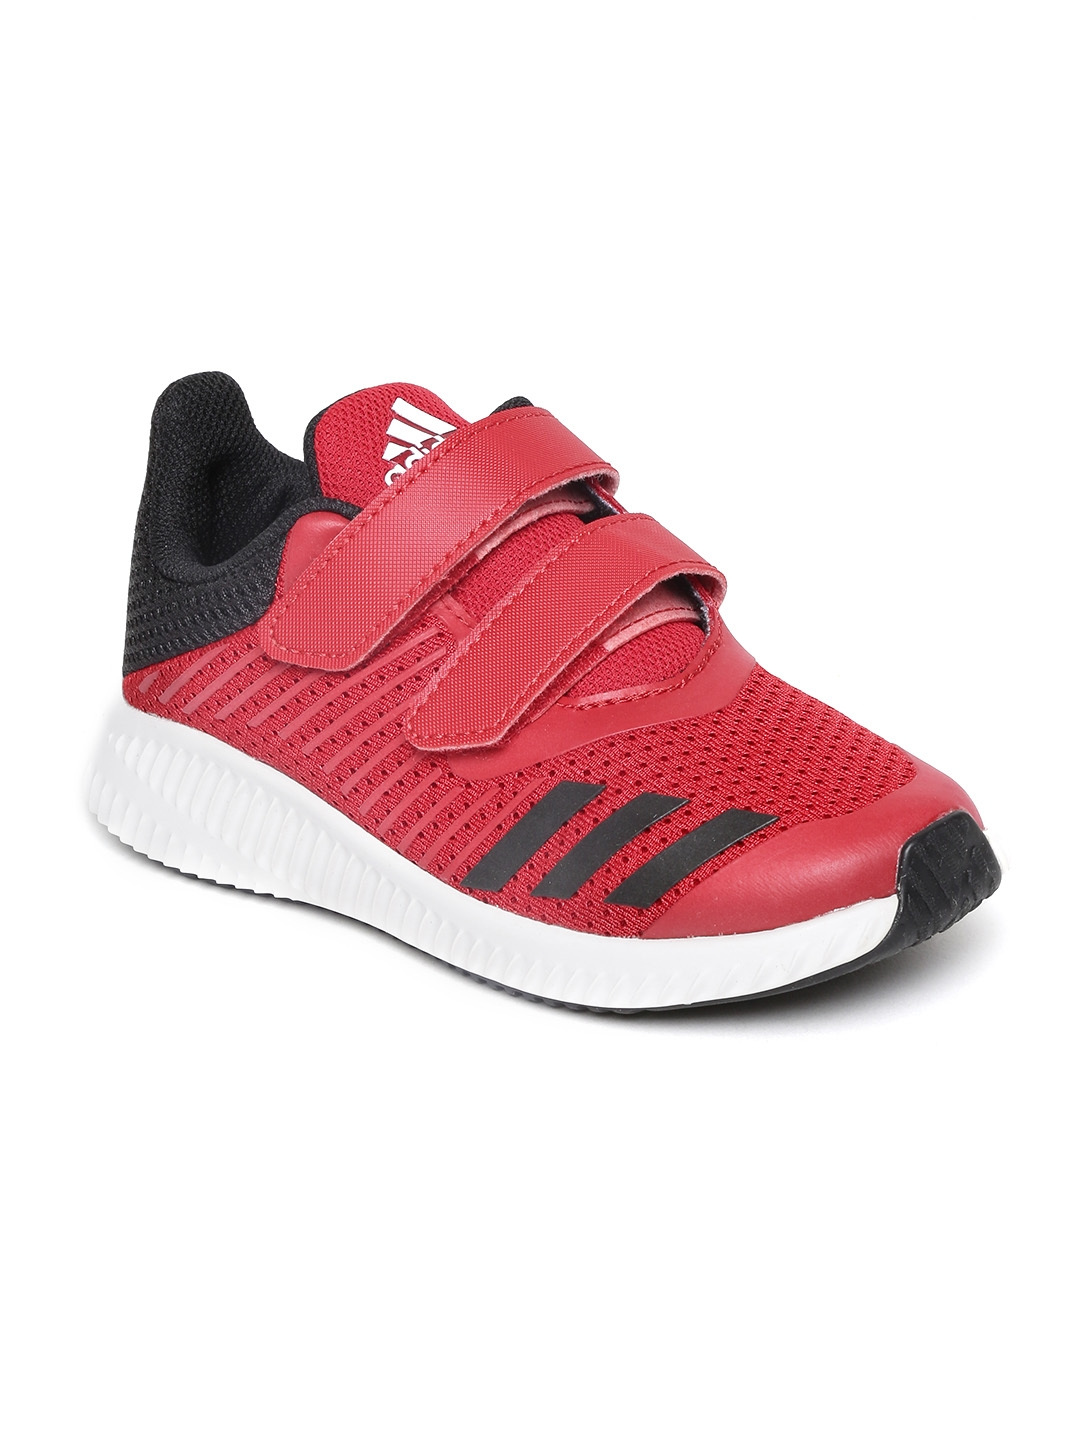 buy online 1449c b5e5b ADIDAS Kids Red Fortarun Cushioned Footbed Knit Running Shoes